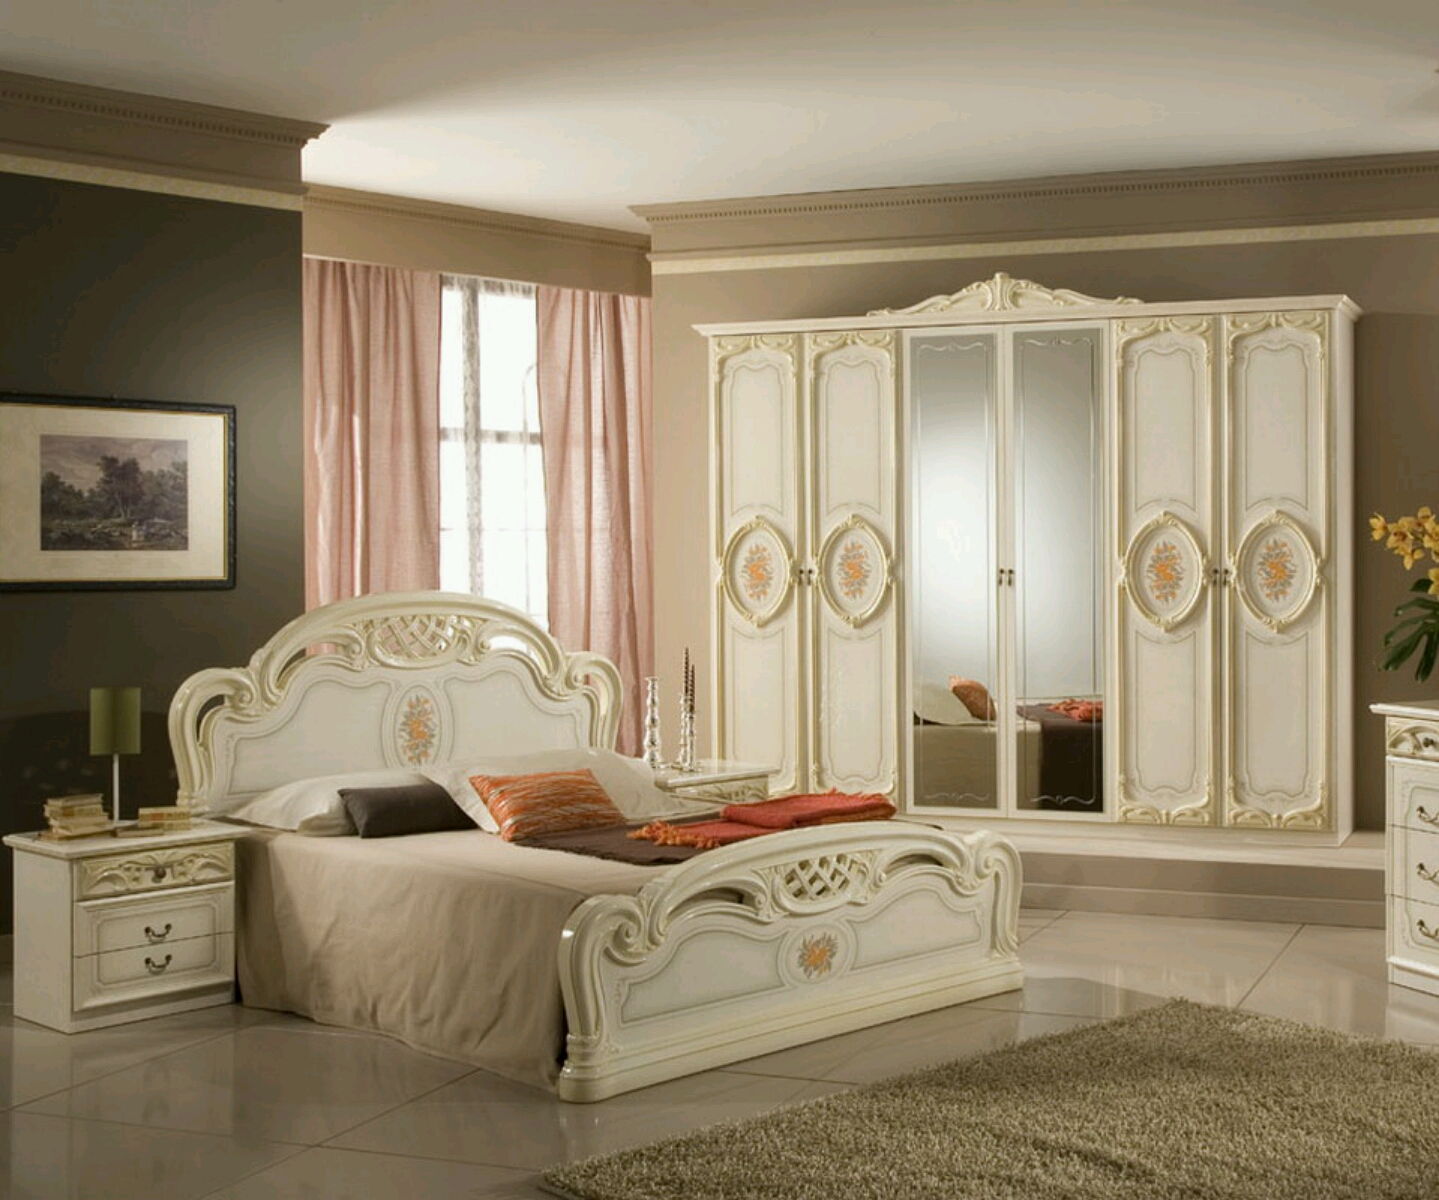 Expensive Bedroom Furniture: Modern Luxury Bedroom Furniture Designs Ideas.